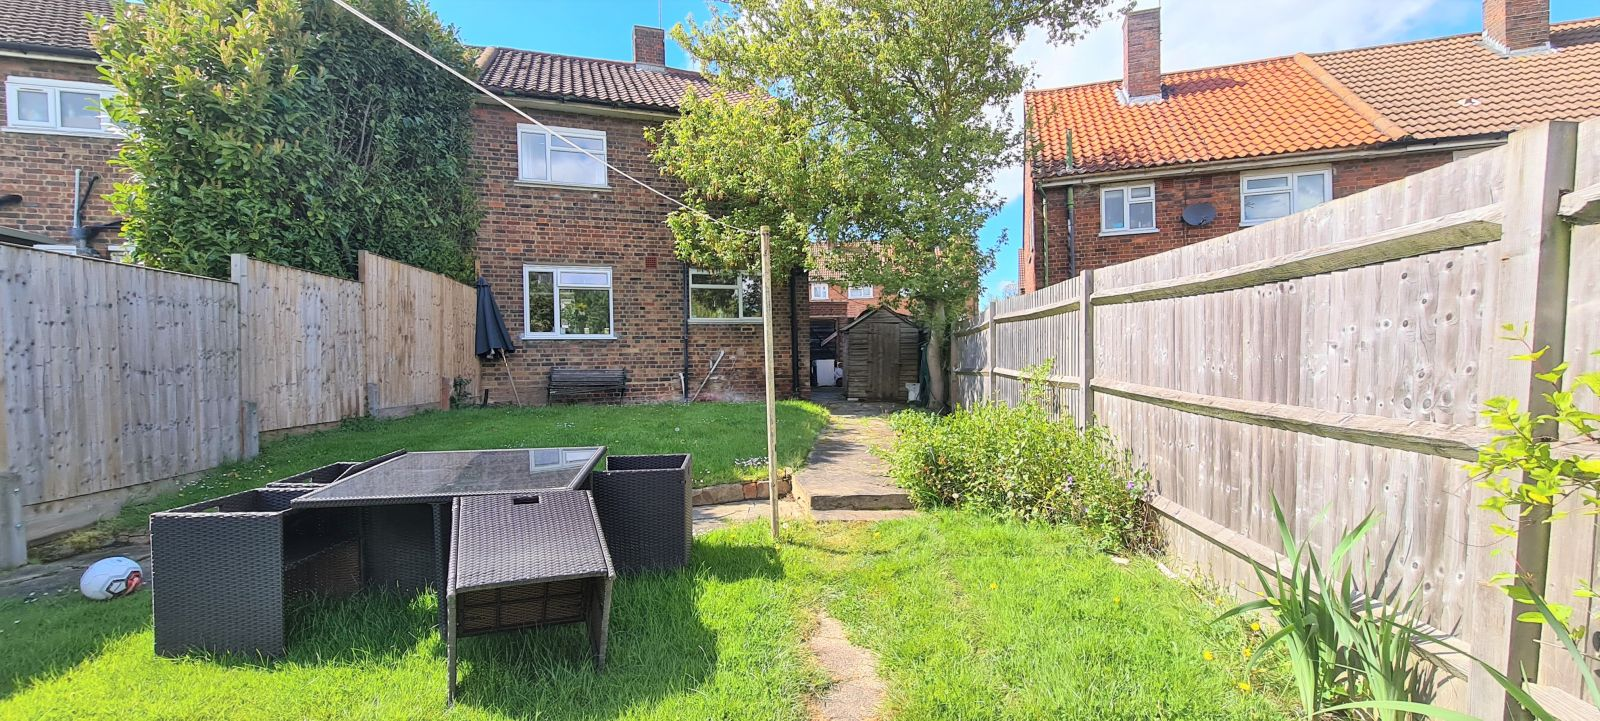 Property photo 1 of 14. 3 Bedroom End Of Terraced House